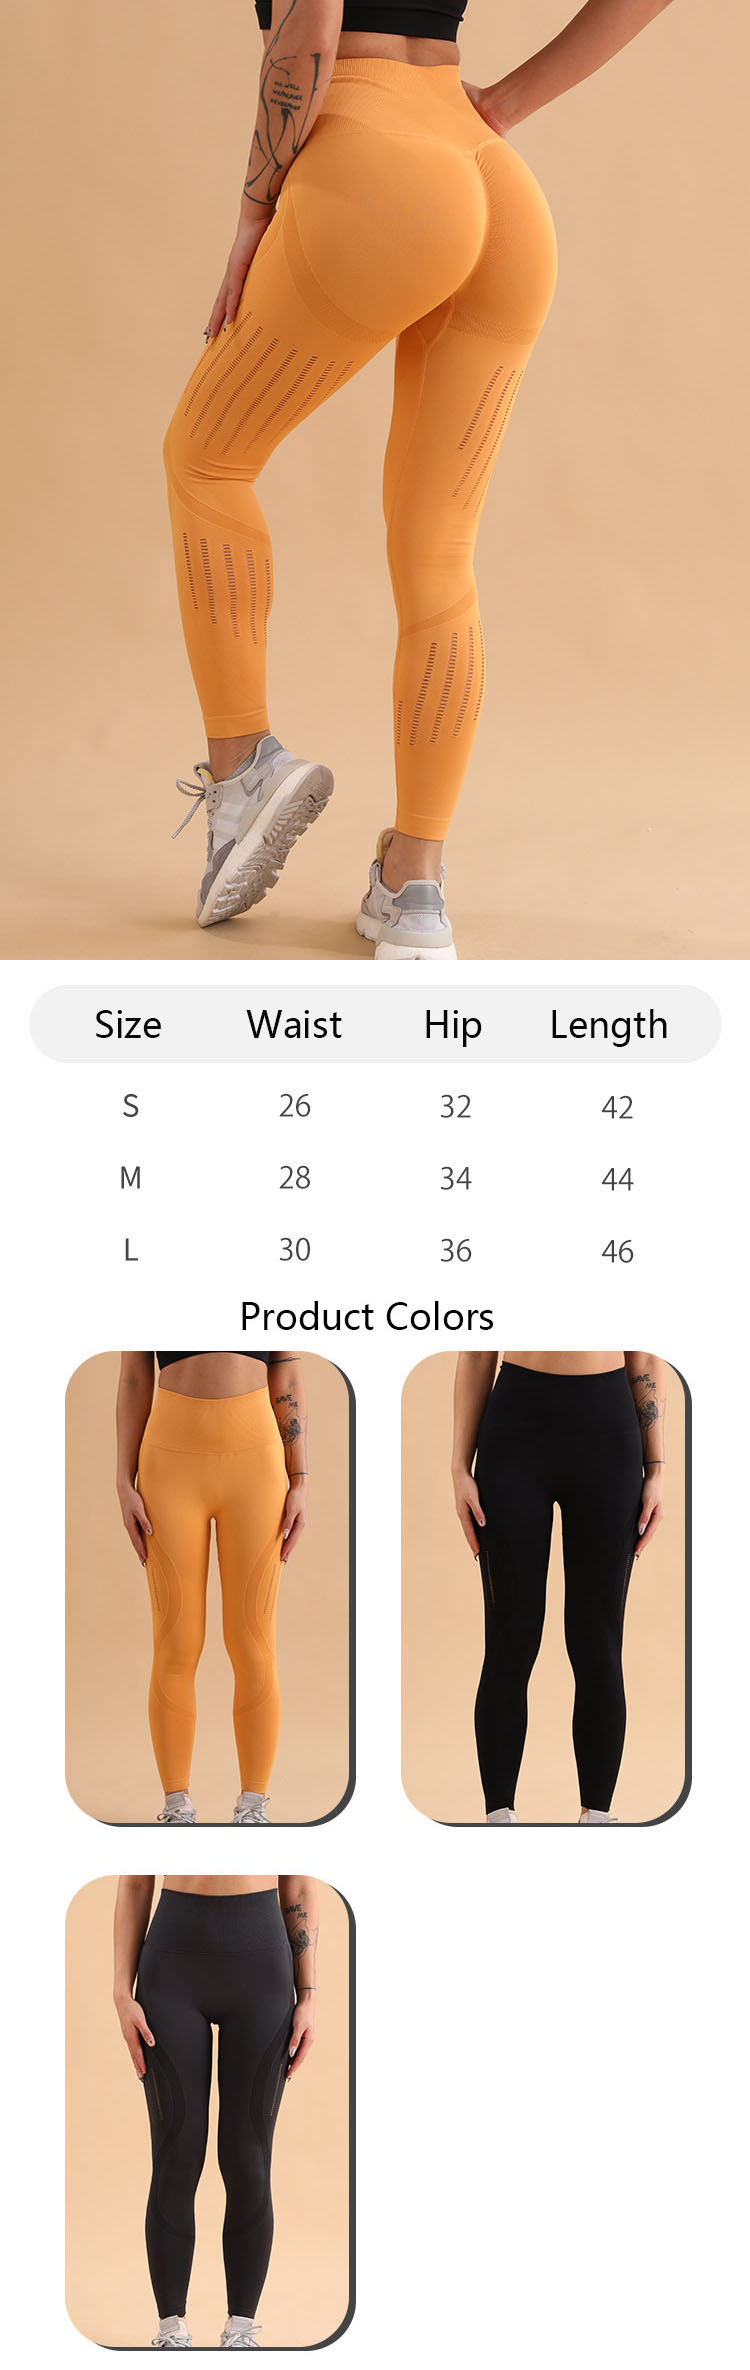 While the development of breathable workout pants tends to be more and more high-count and high-density